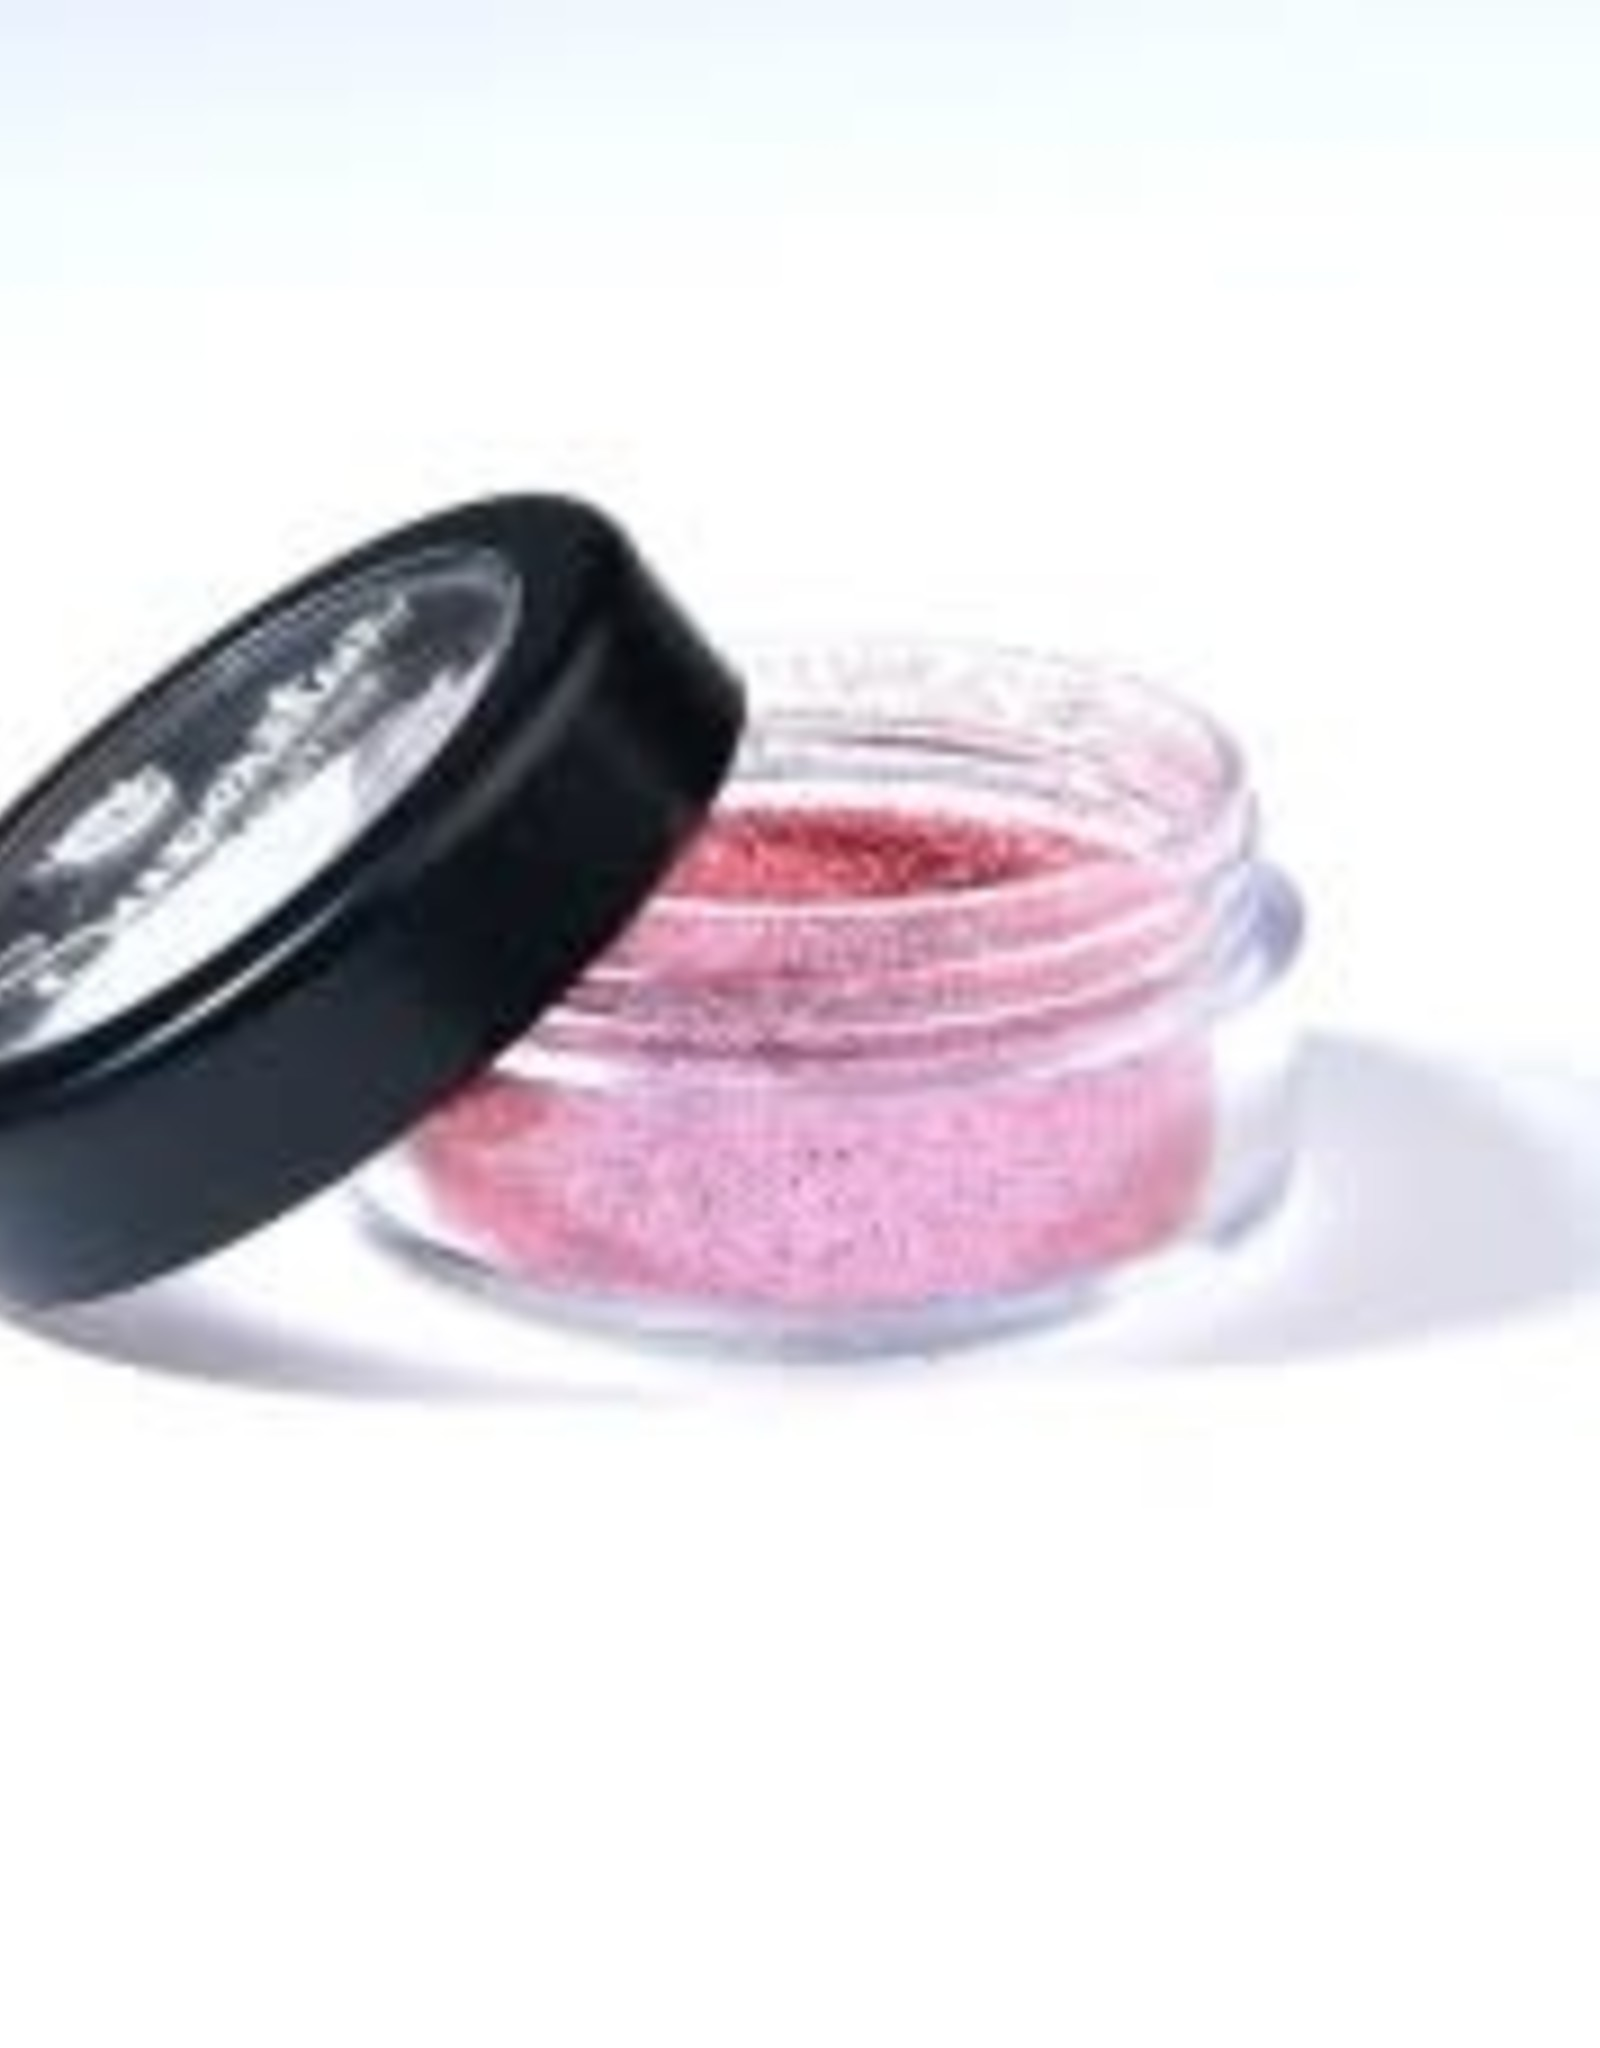 Superstar Fine Rose Pink Biodegradable Face- and Body Glitter